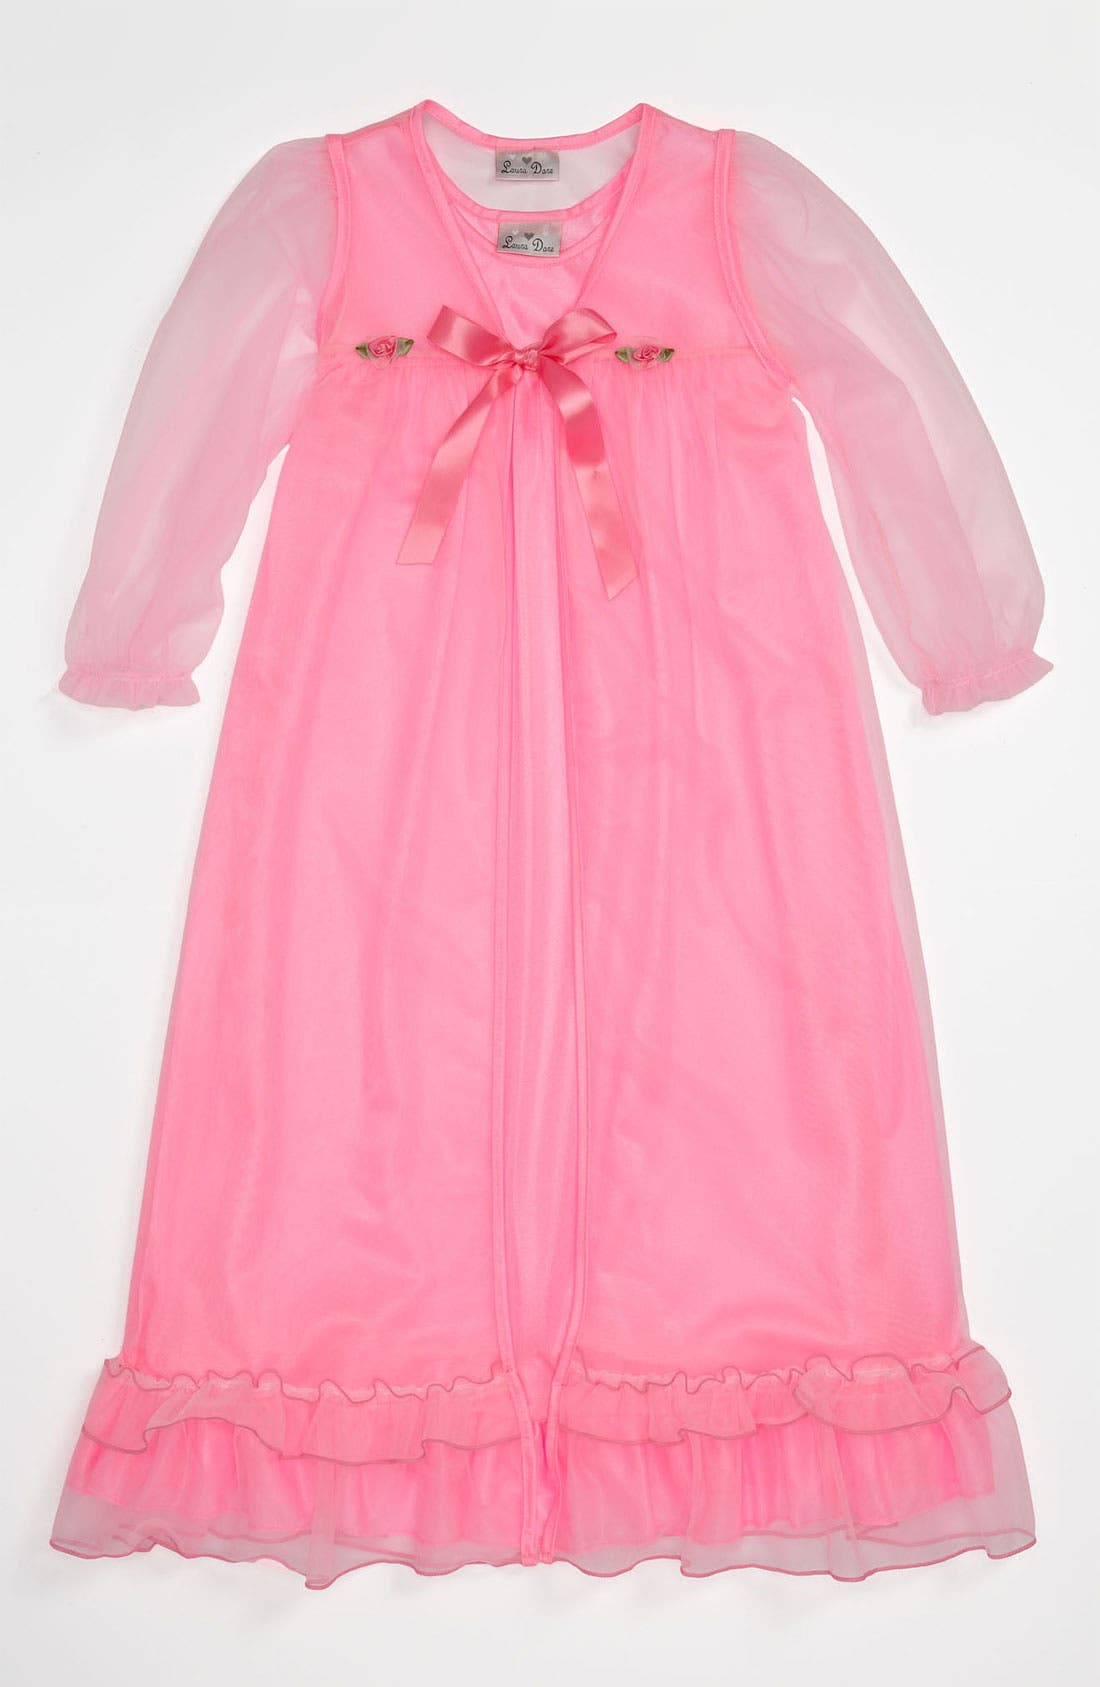 Main Image - Laura Dare Nightgown & Robe (Little Girls)